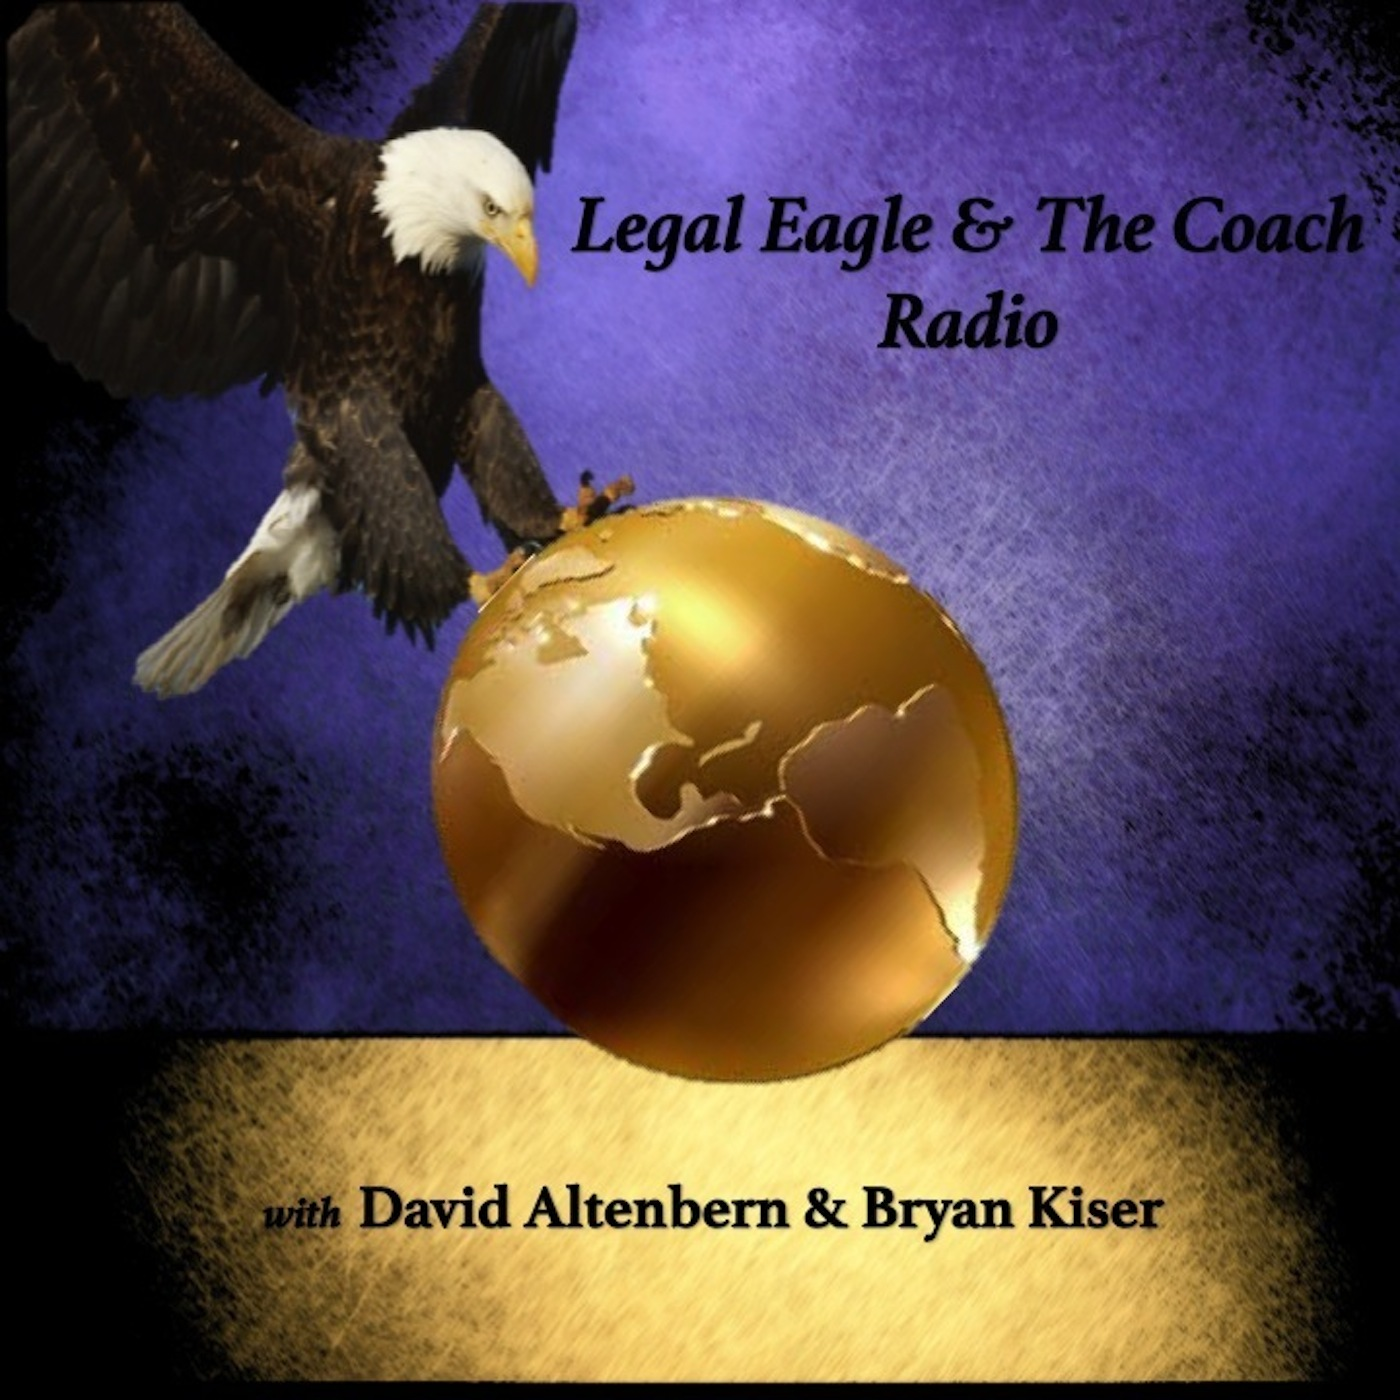 Legal Eagle & The Coach